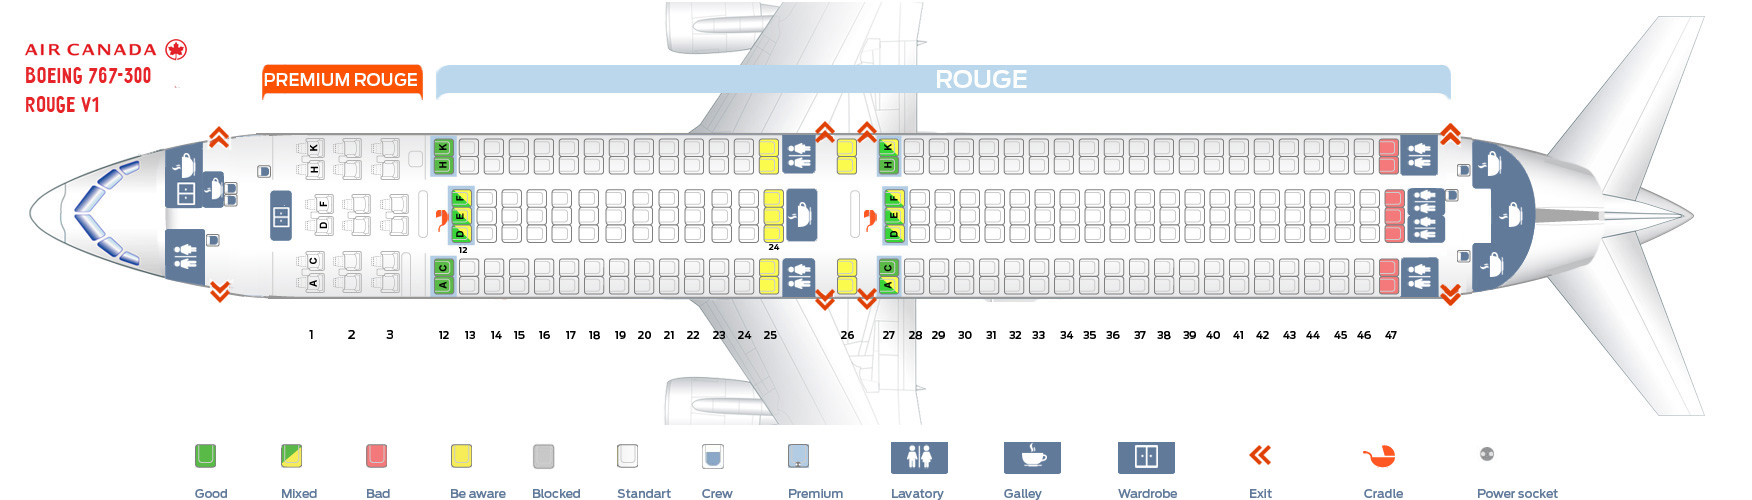 Seat map Air Canada Boeing-767-300 Rouge version 1